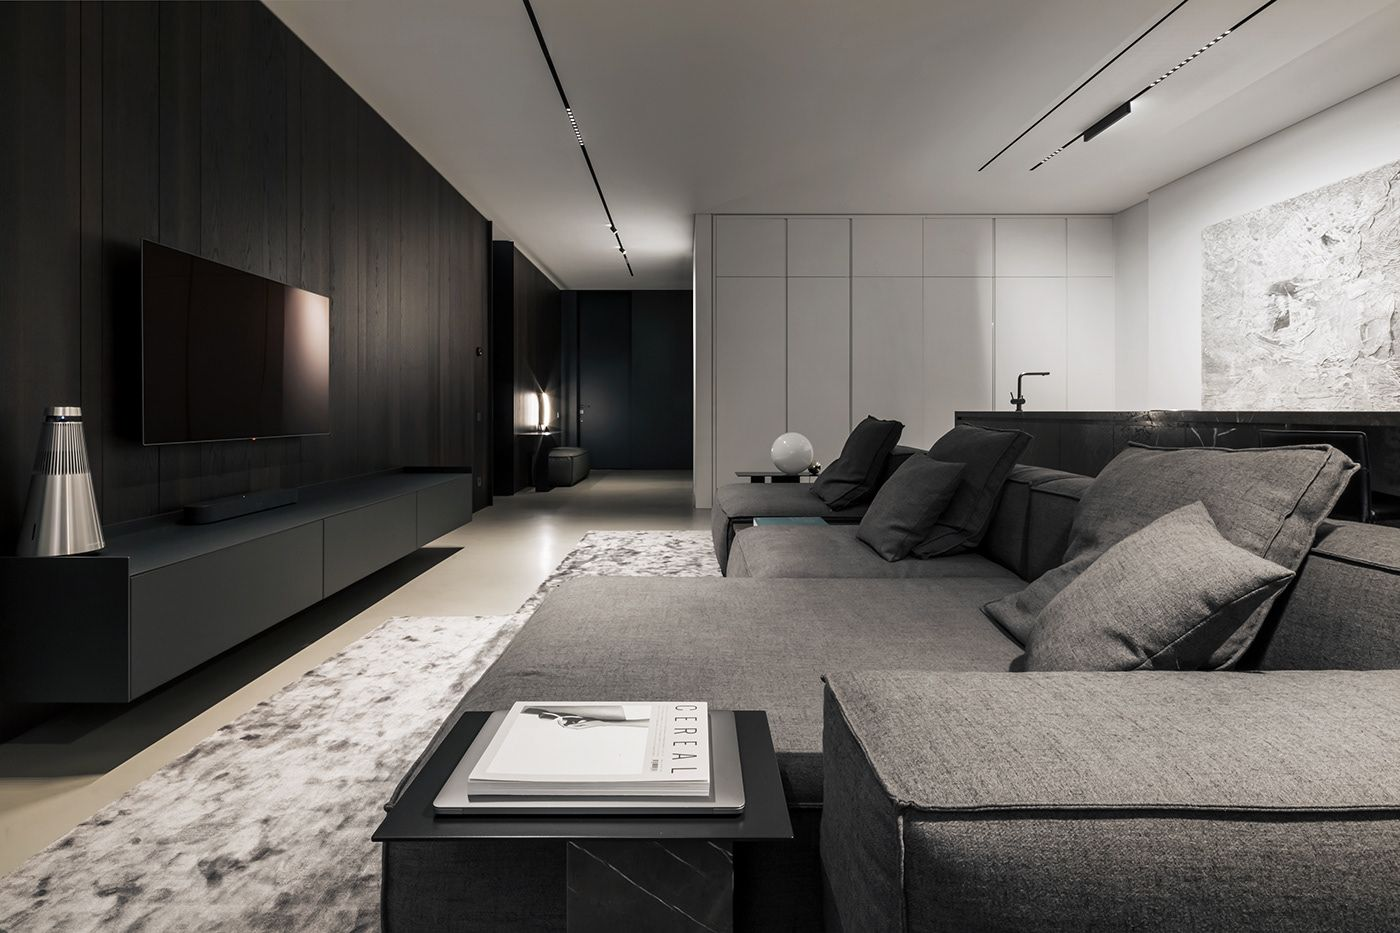 Minimalist Style Home In Kiev On Behance Minimalism Interior Living Room Designs House Interior Decor